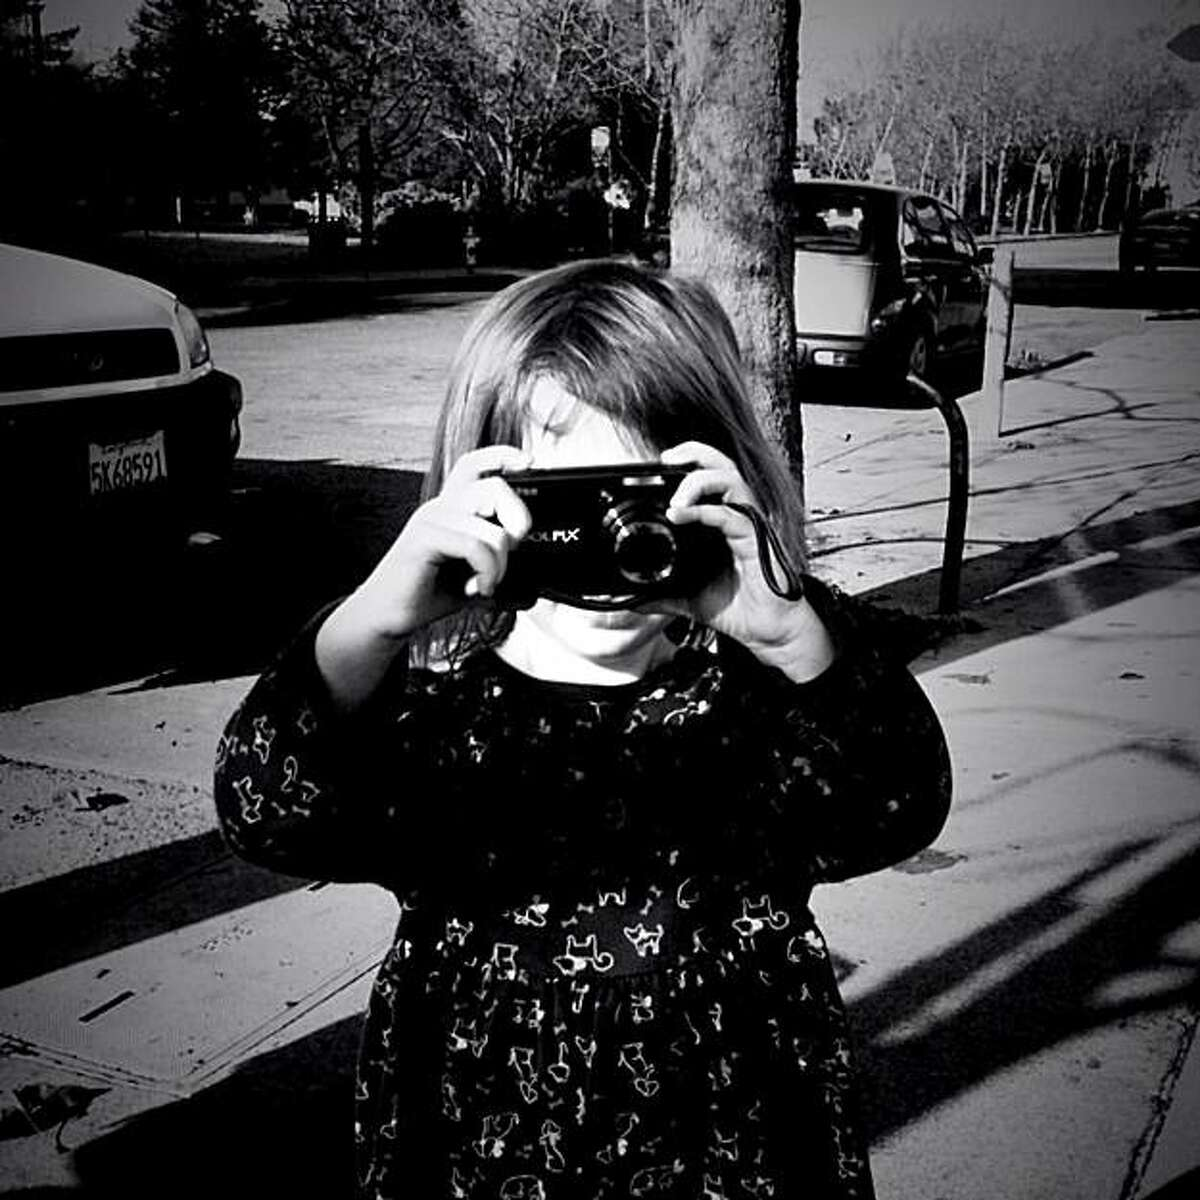 Ruby Ellenby, who is three years, old, has her first photography exhibit.